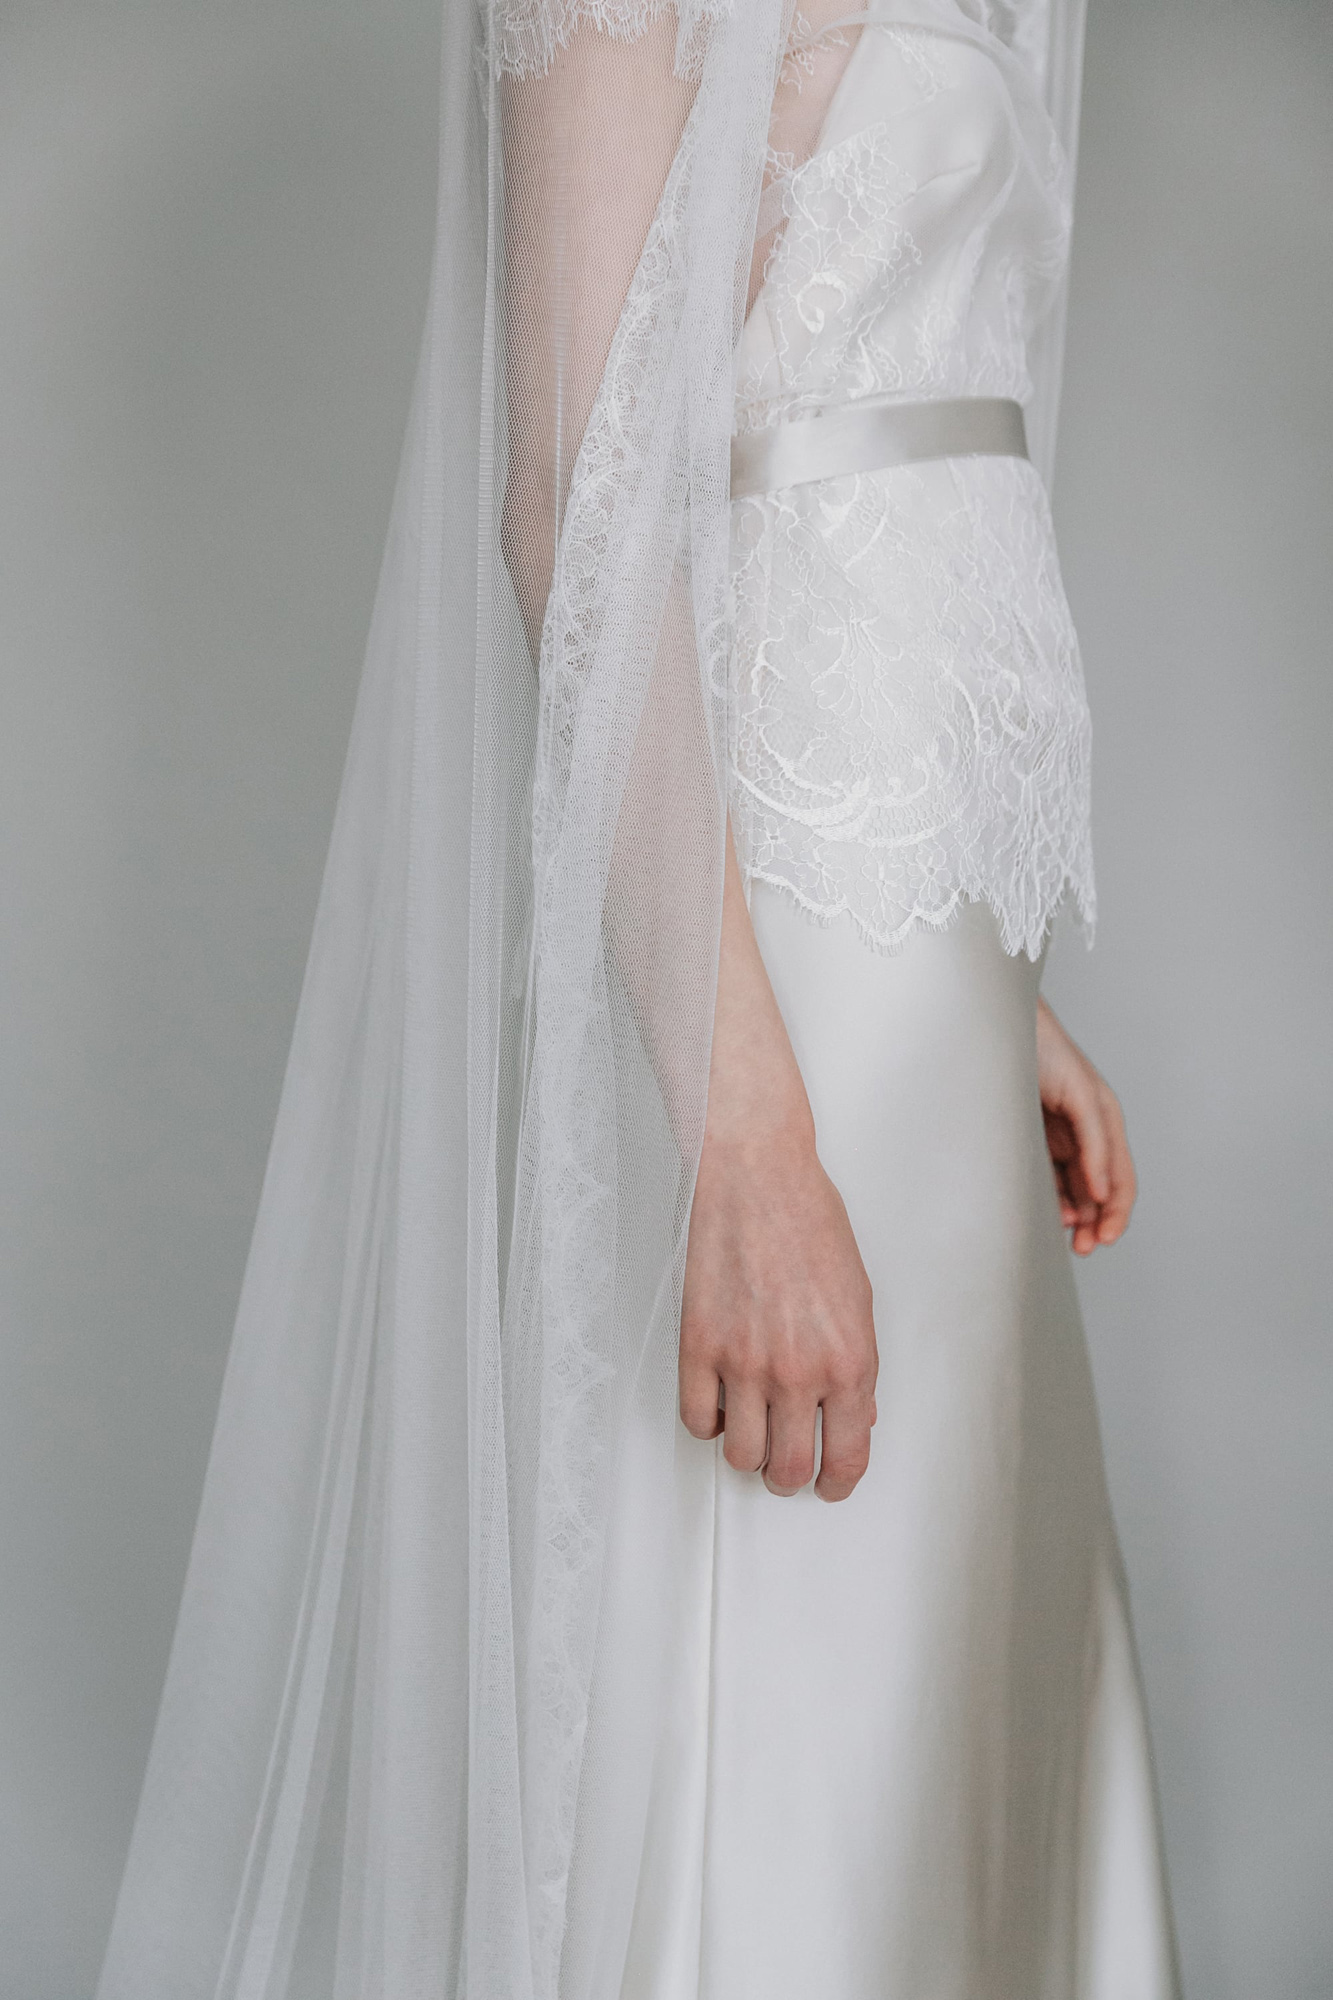 Kate-Beaumont-Sheffield-Lilac-Bridal-Separates-Lace-and-Silk-Wedding-Gown-14.jpg